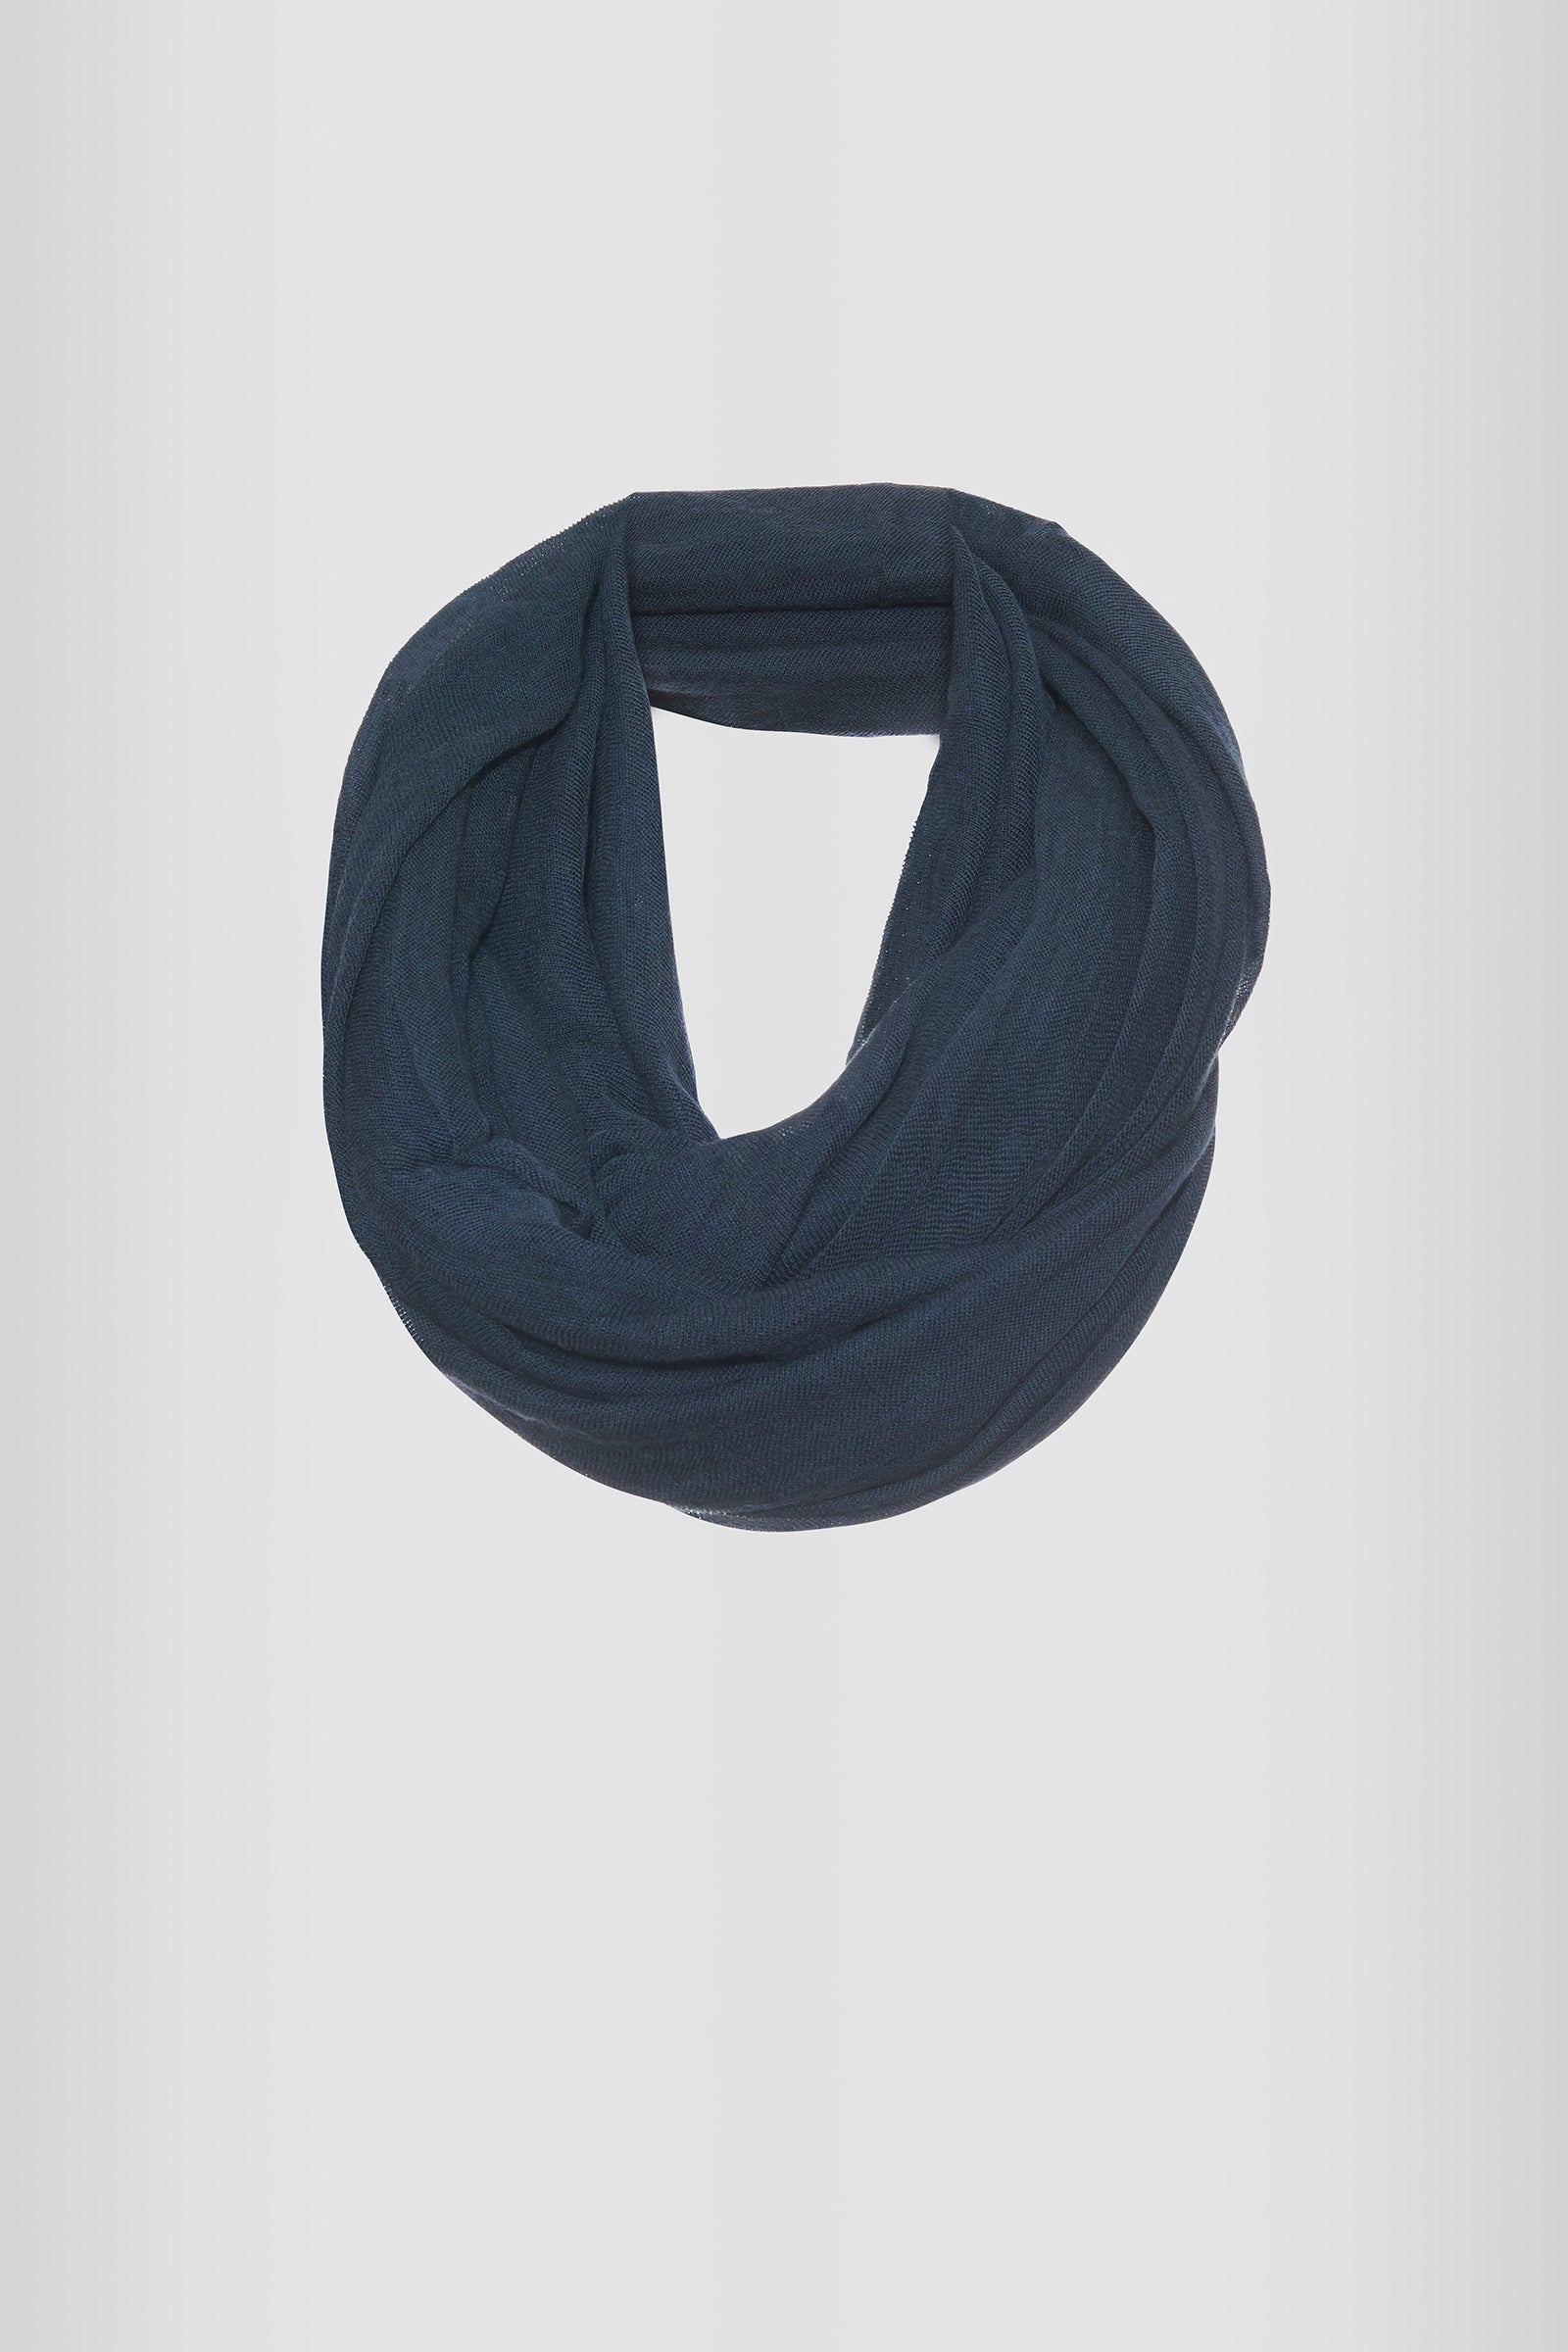 Kal Rieman Infinity Circle Scarf in Teal